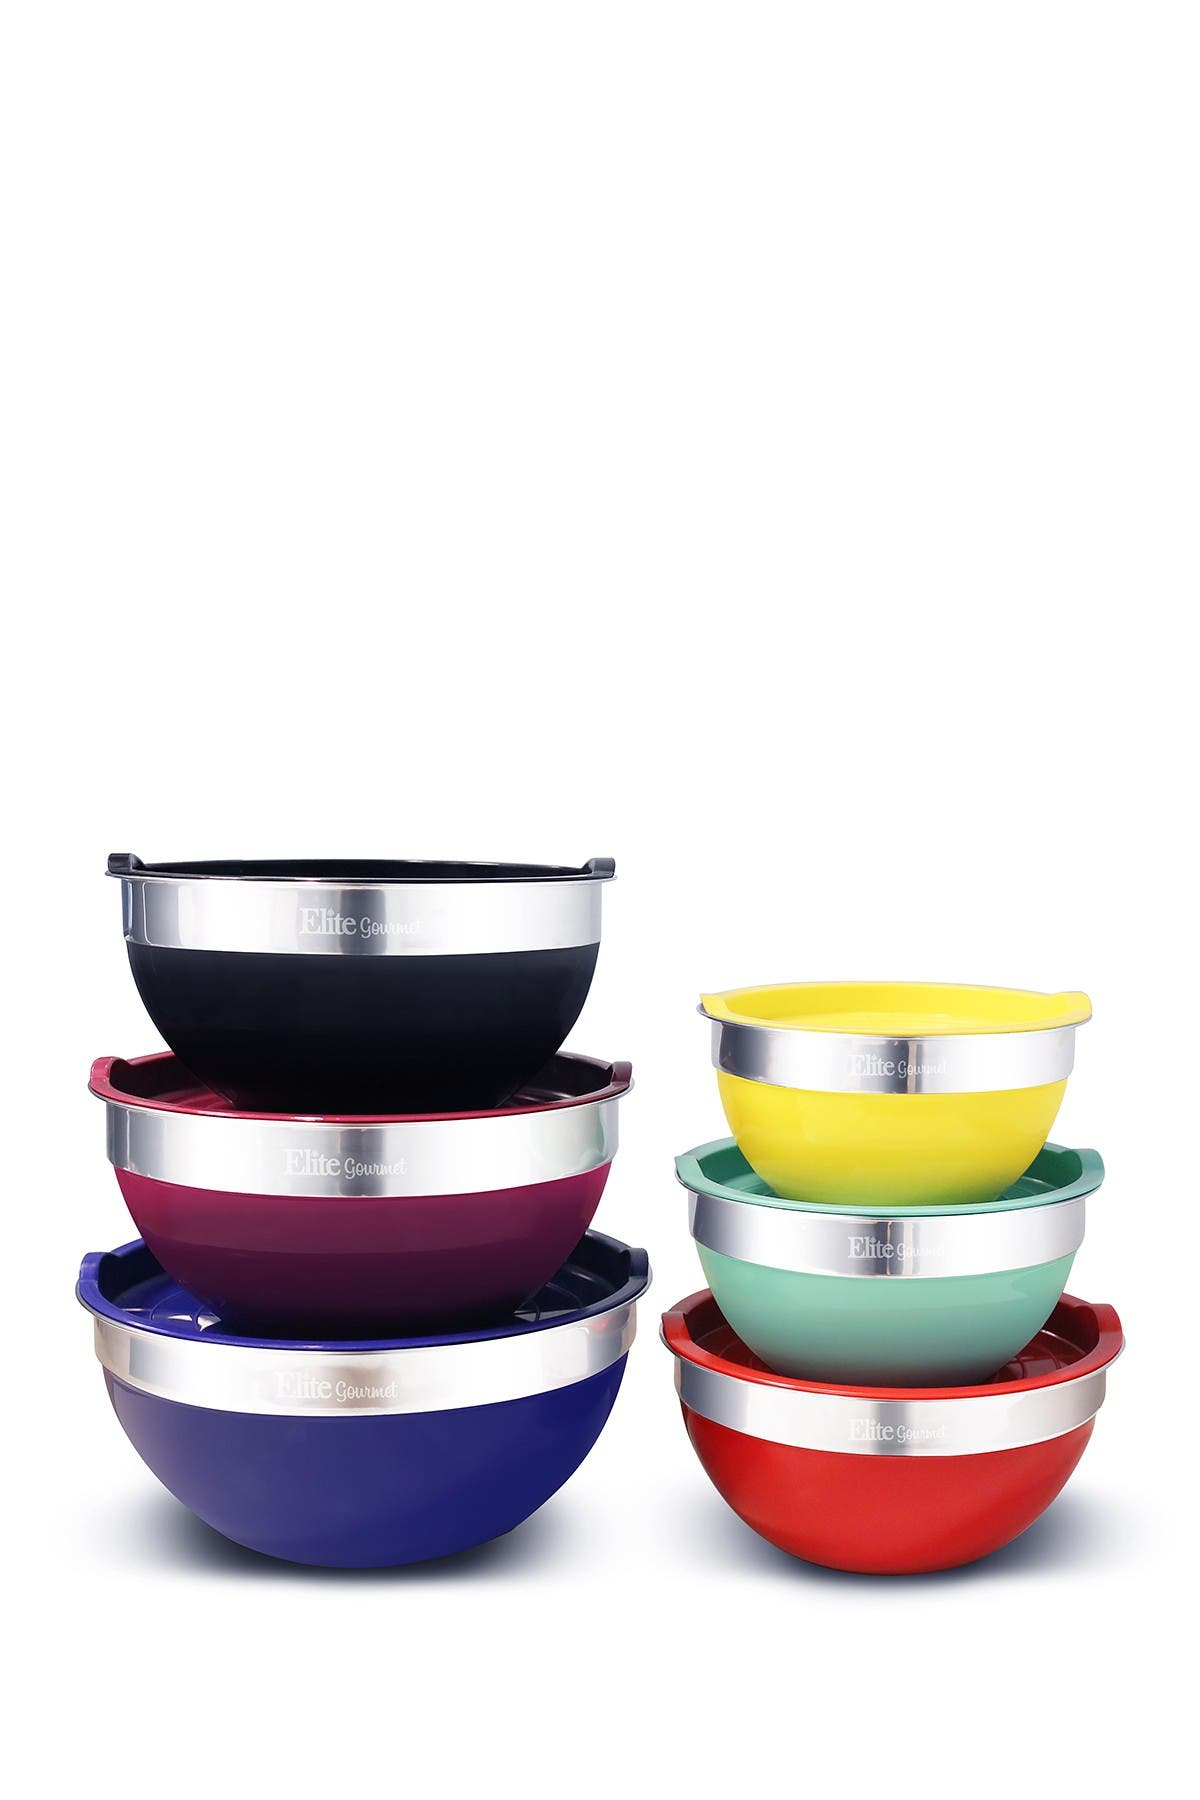 Image of MAXI-MATIC Elite Gourmet 12-Piece Colored Mixing Bowls with Lids